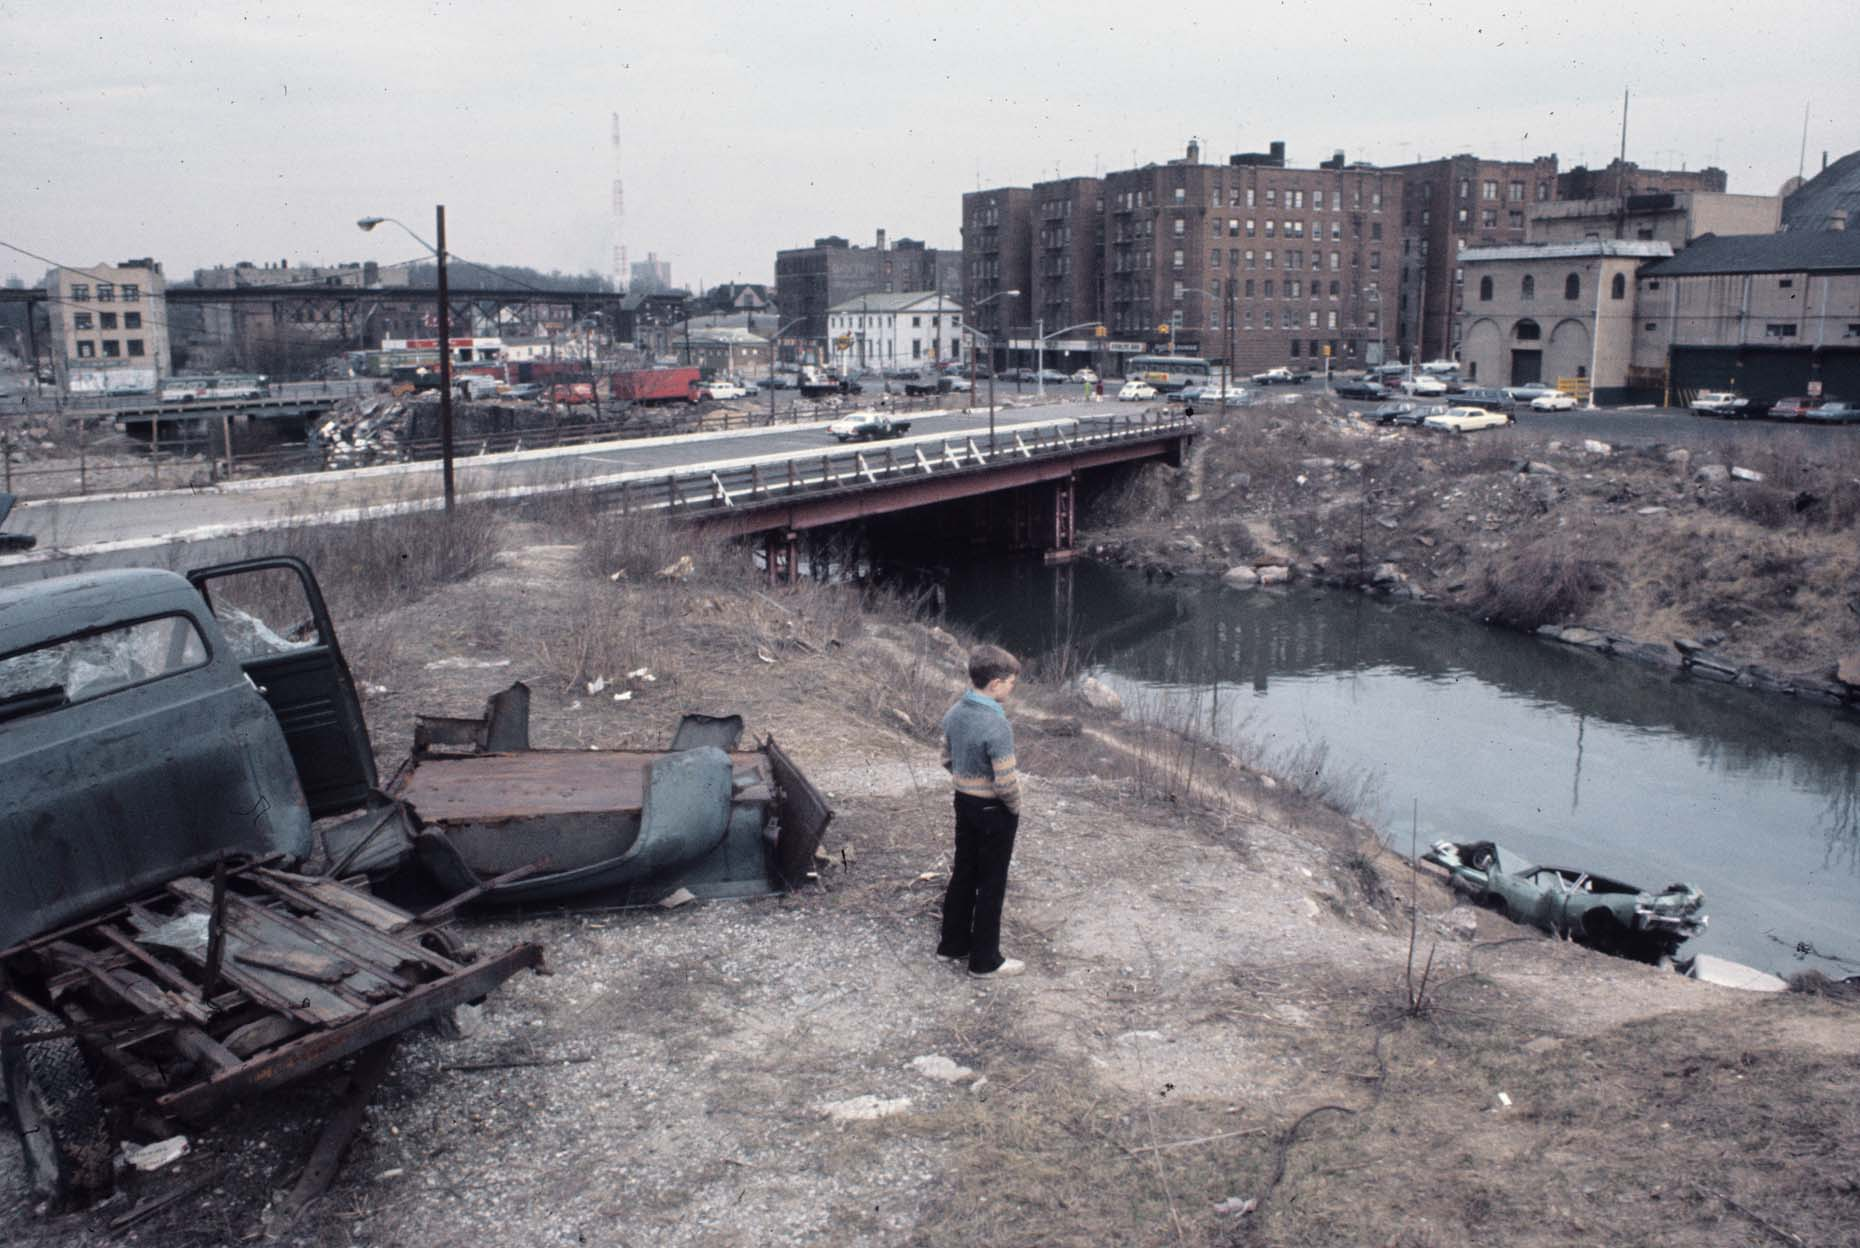 62_Bronx River  Bronx New York 1970_.jpg